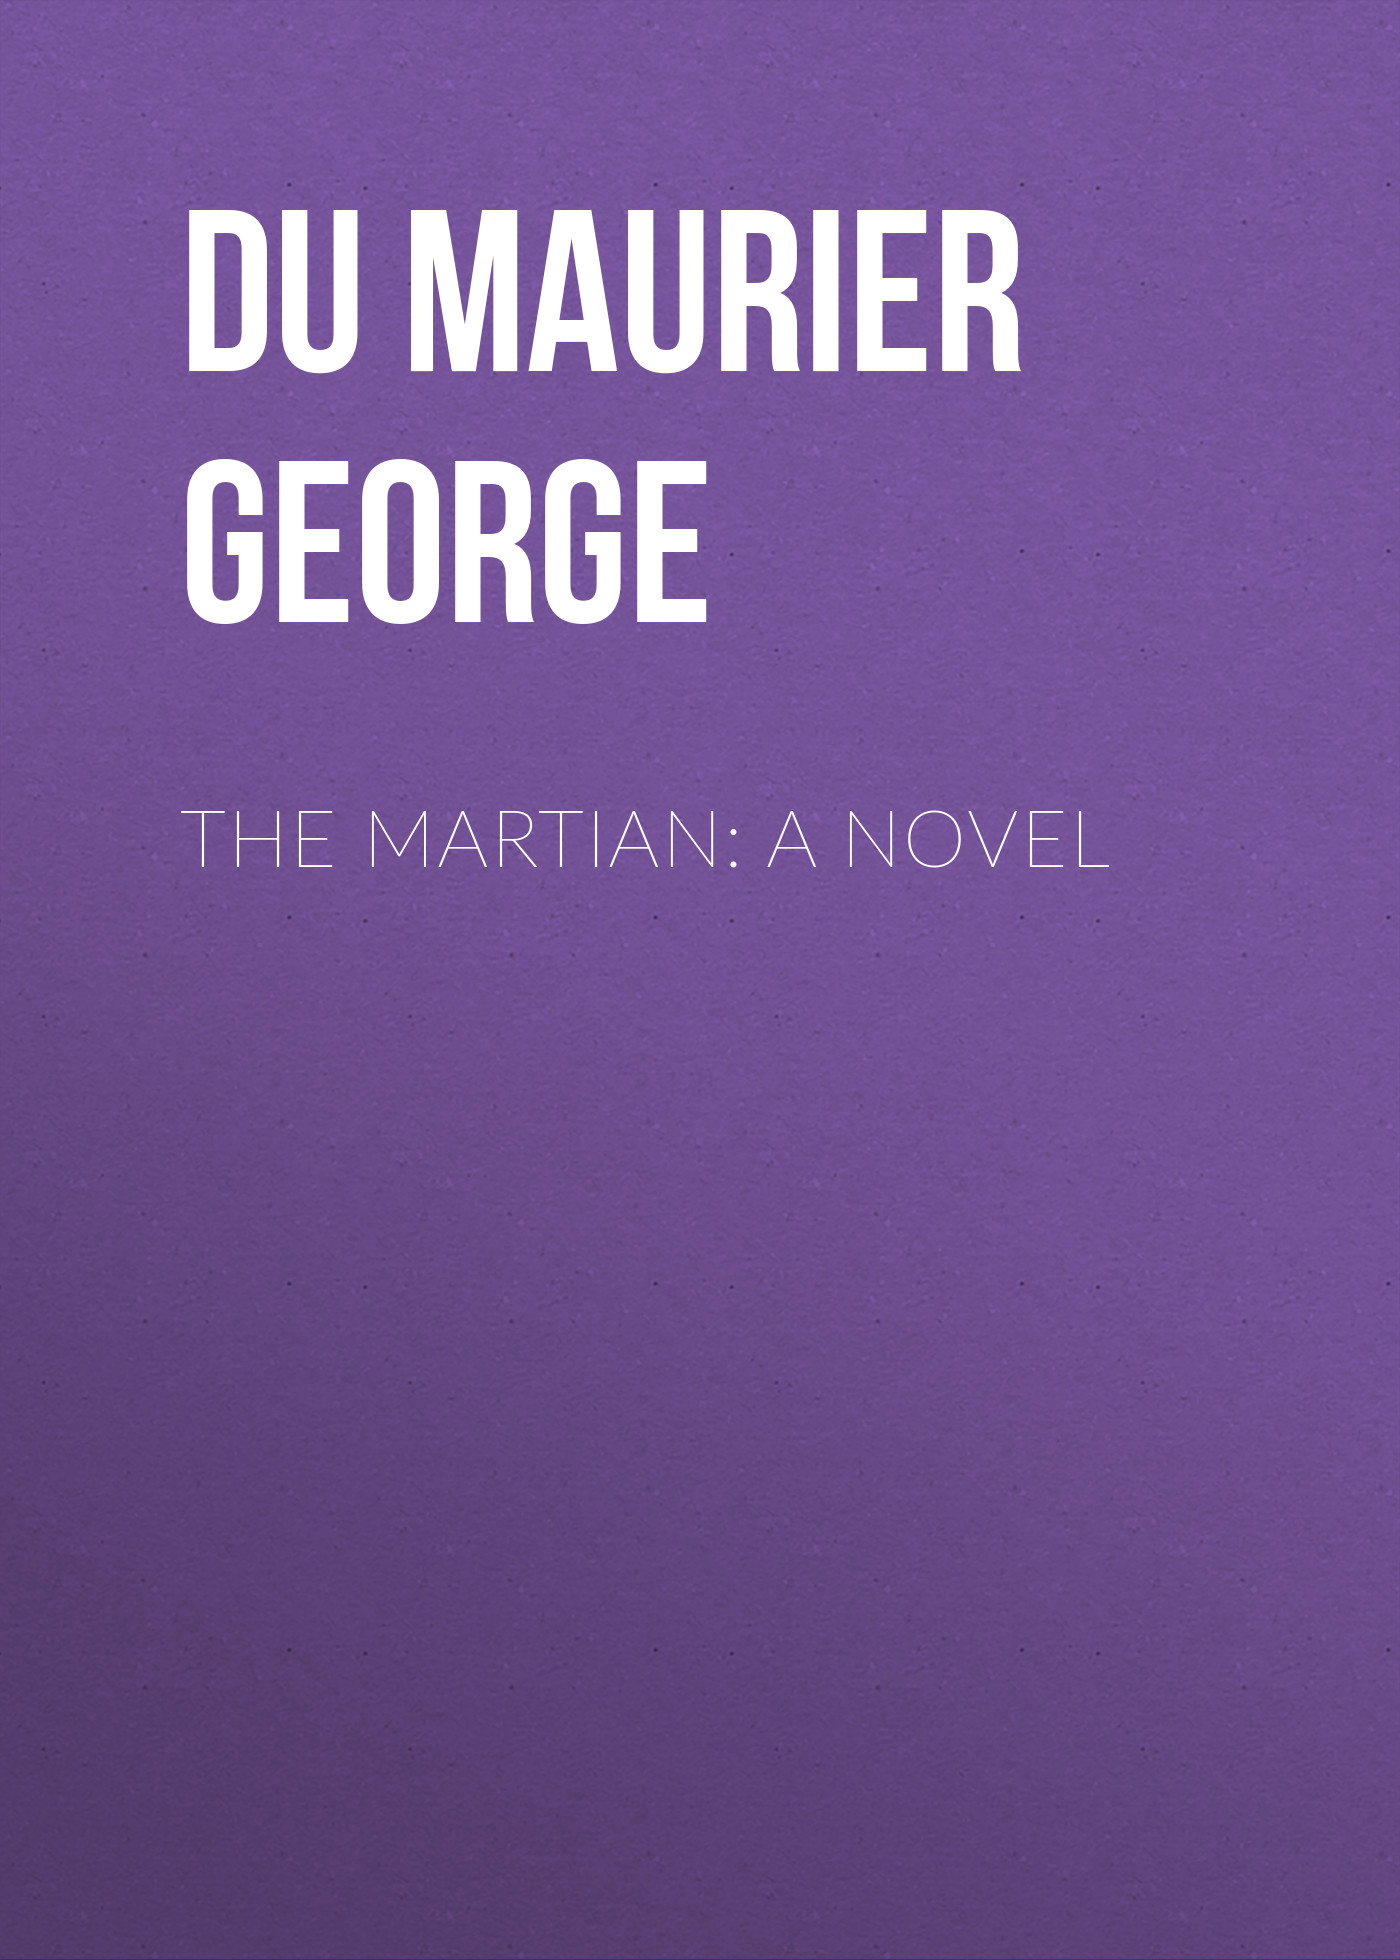 Du Maurier George The Martian: A Novel